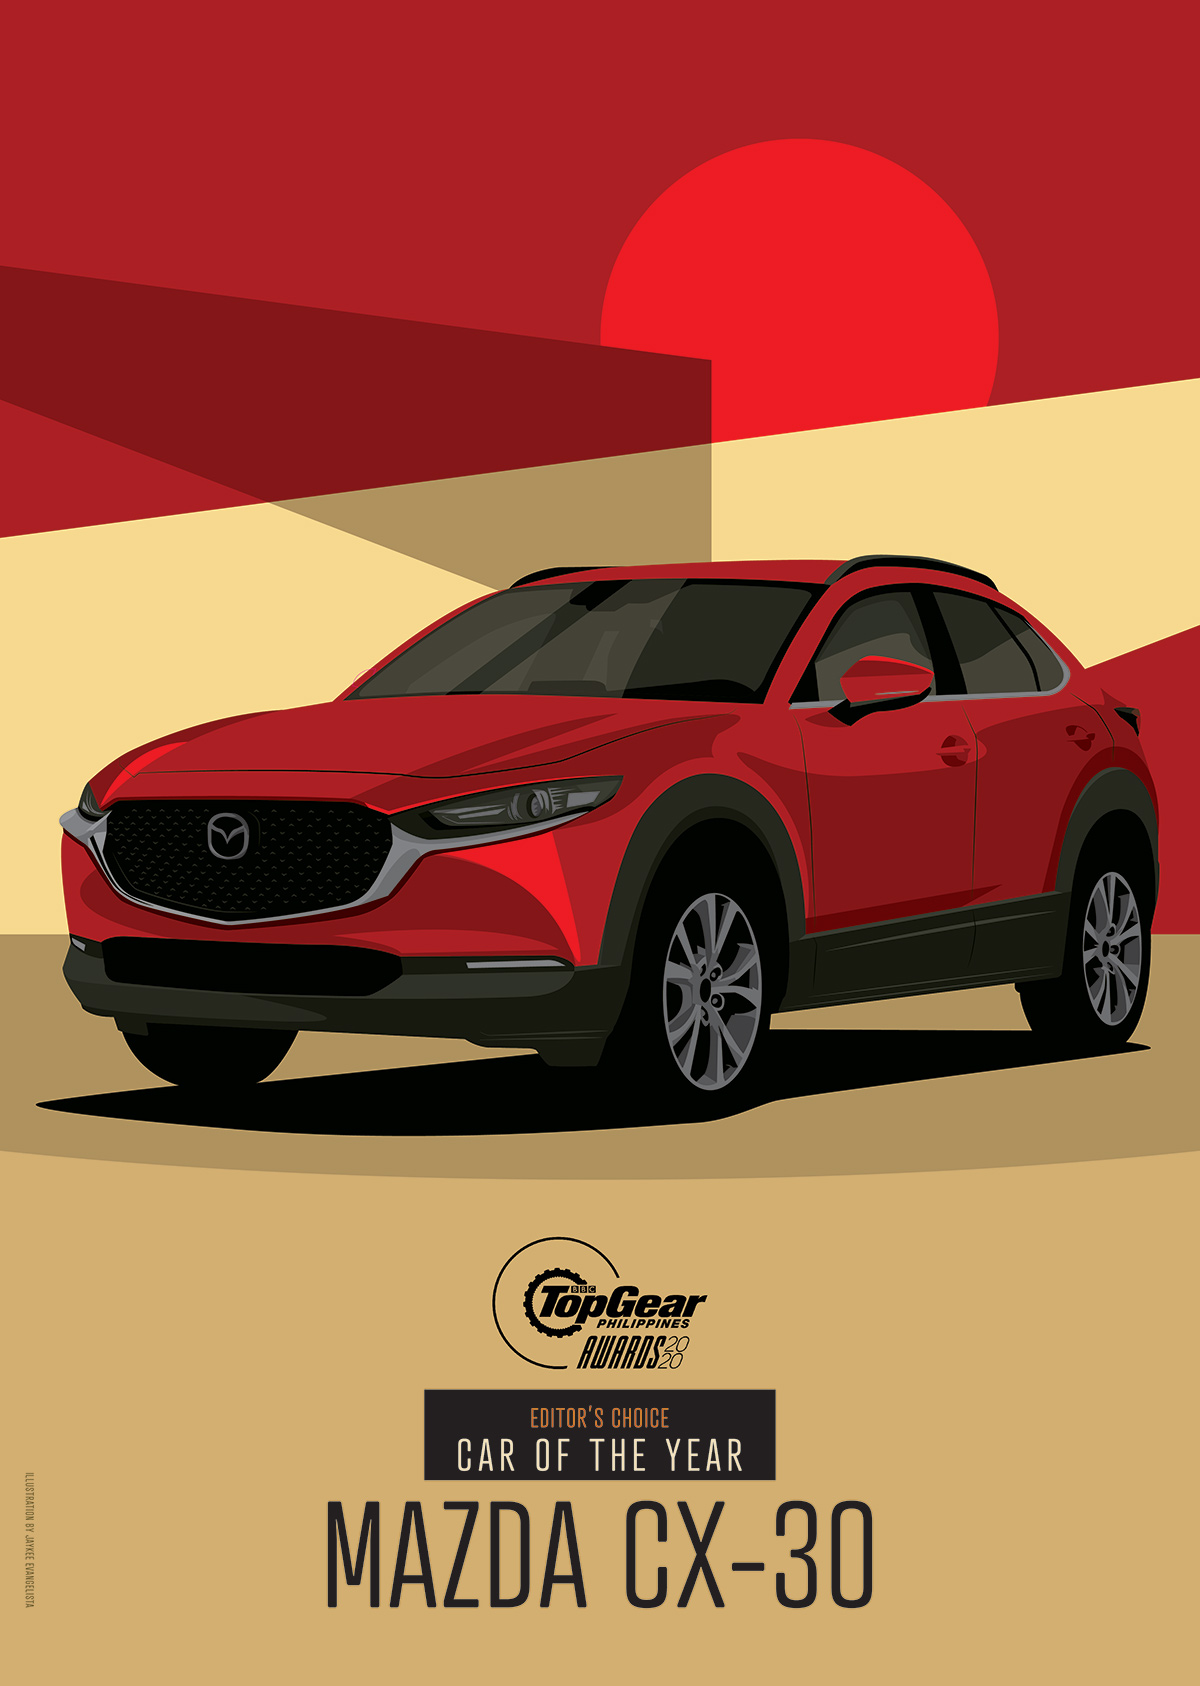 Top Gear Philippines' Car of the Year – Mazda CX-30